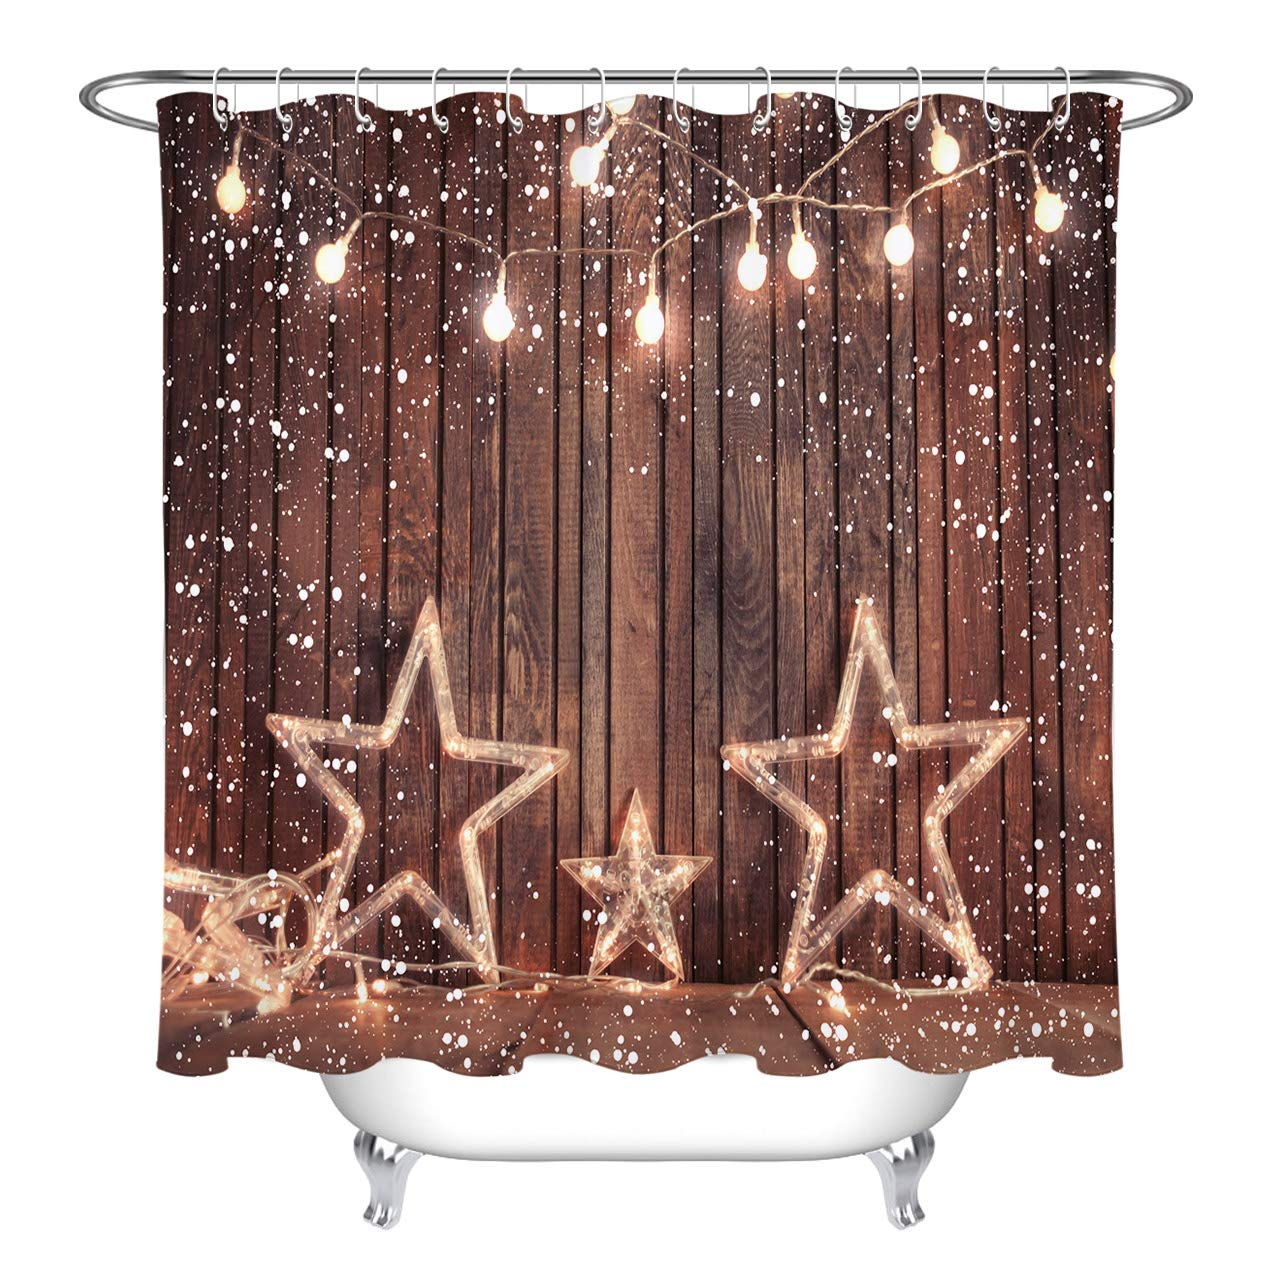 LB Christmas Lights Star Decor Rustic Country Barn Wood Curtains For Shower Stall Vintage Themed Curtain Set 70 X Inch Window